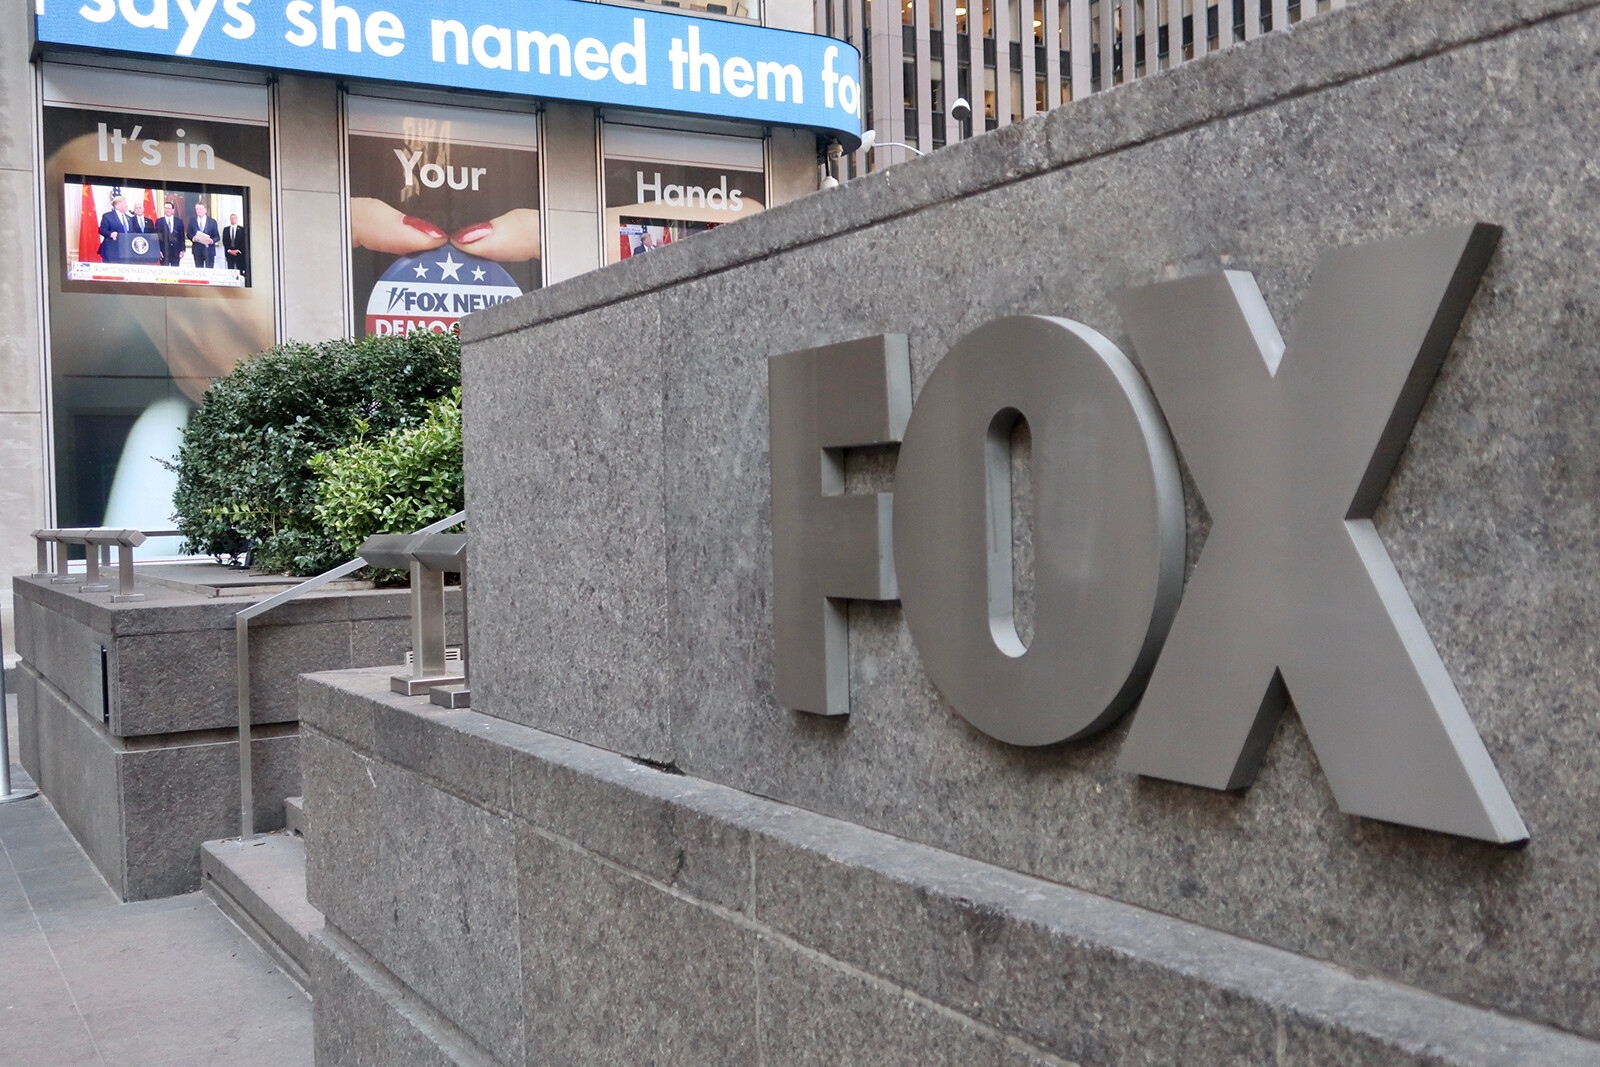 White House has held discussions with Fox News over its Covid-19 coverage